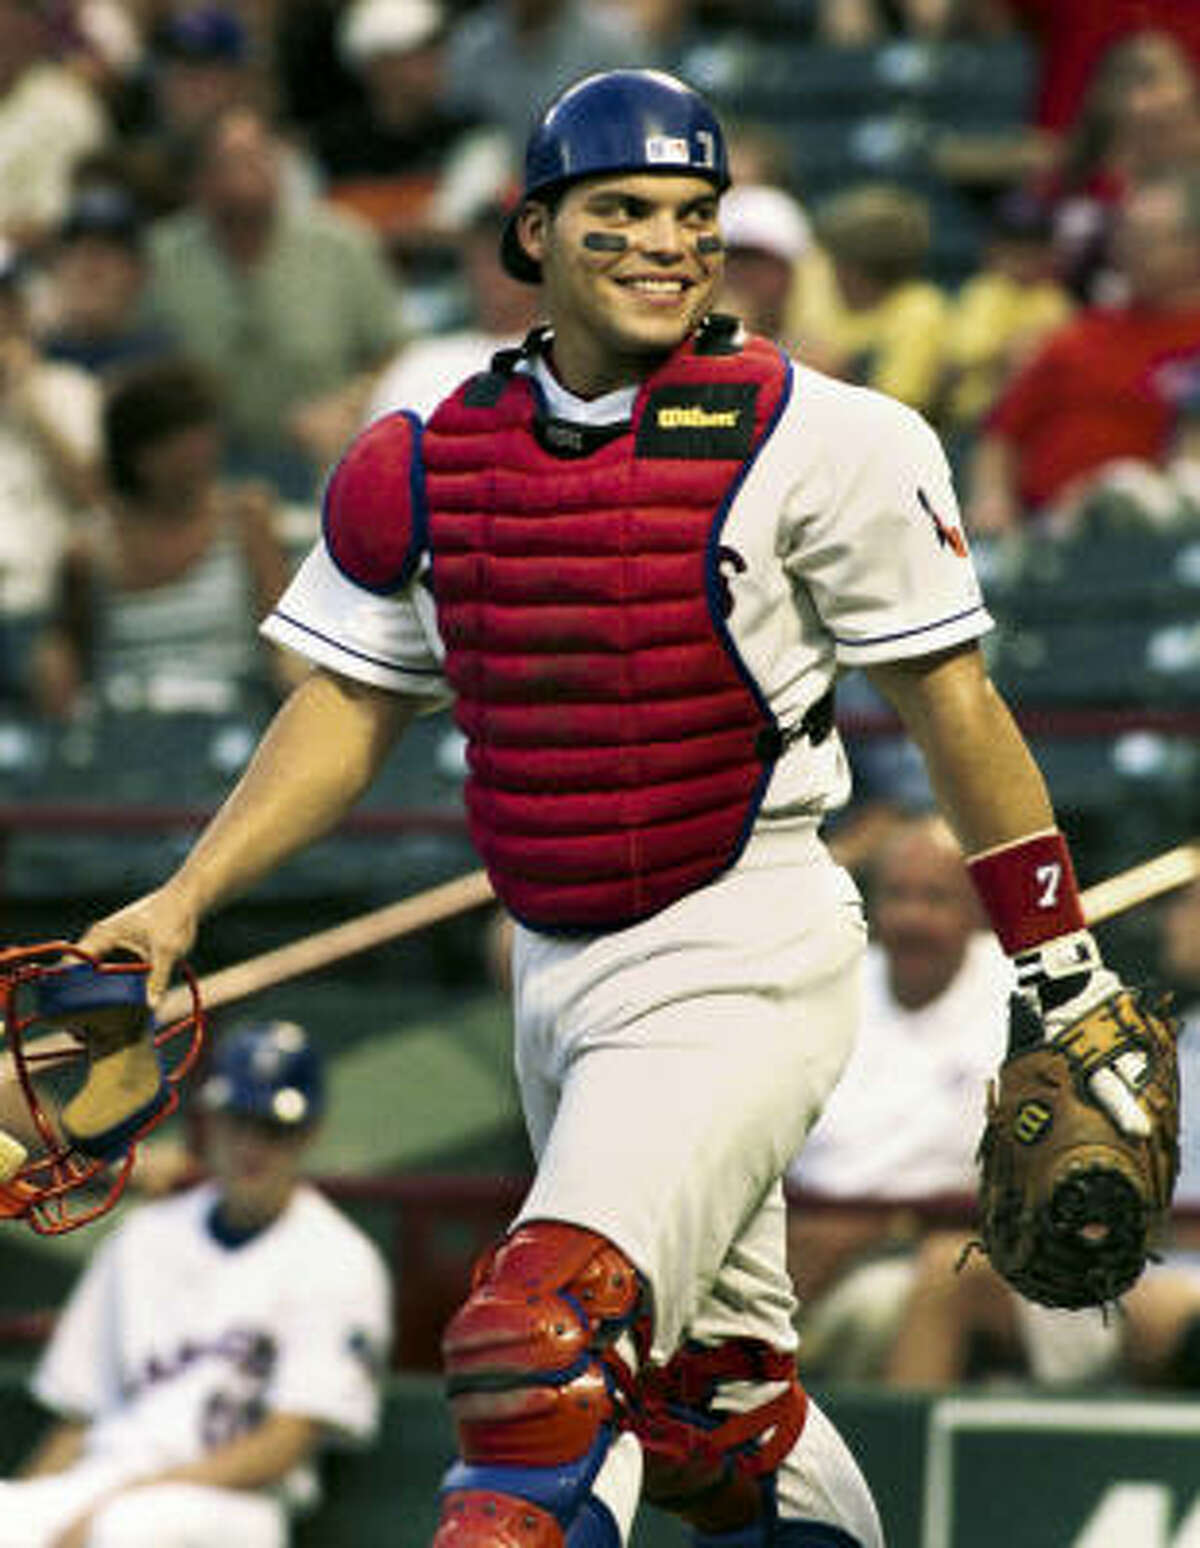 Catcher: Ivan Rodriguez A 13-time Gold Glove recipient, Pudge won 10 of those awards consecutively for Texas from 1992-2001 and was the American League's Most Valuable Player in 1999, when he hit .332 with 35 homers and 113 RBIs. During a 93-game stint with the Astros in 2009, Rodriguez hit his 300th career home run.